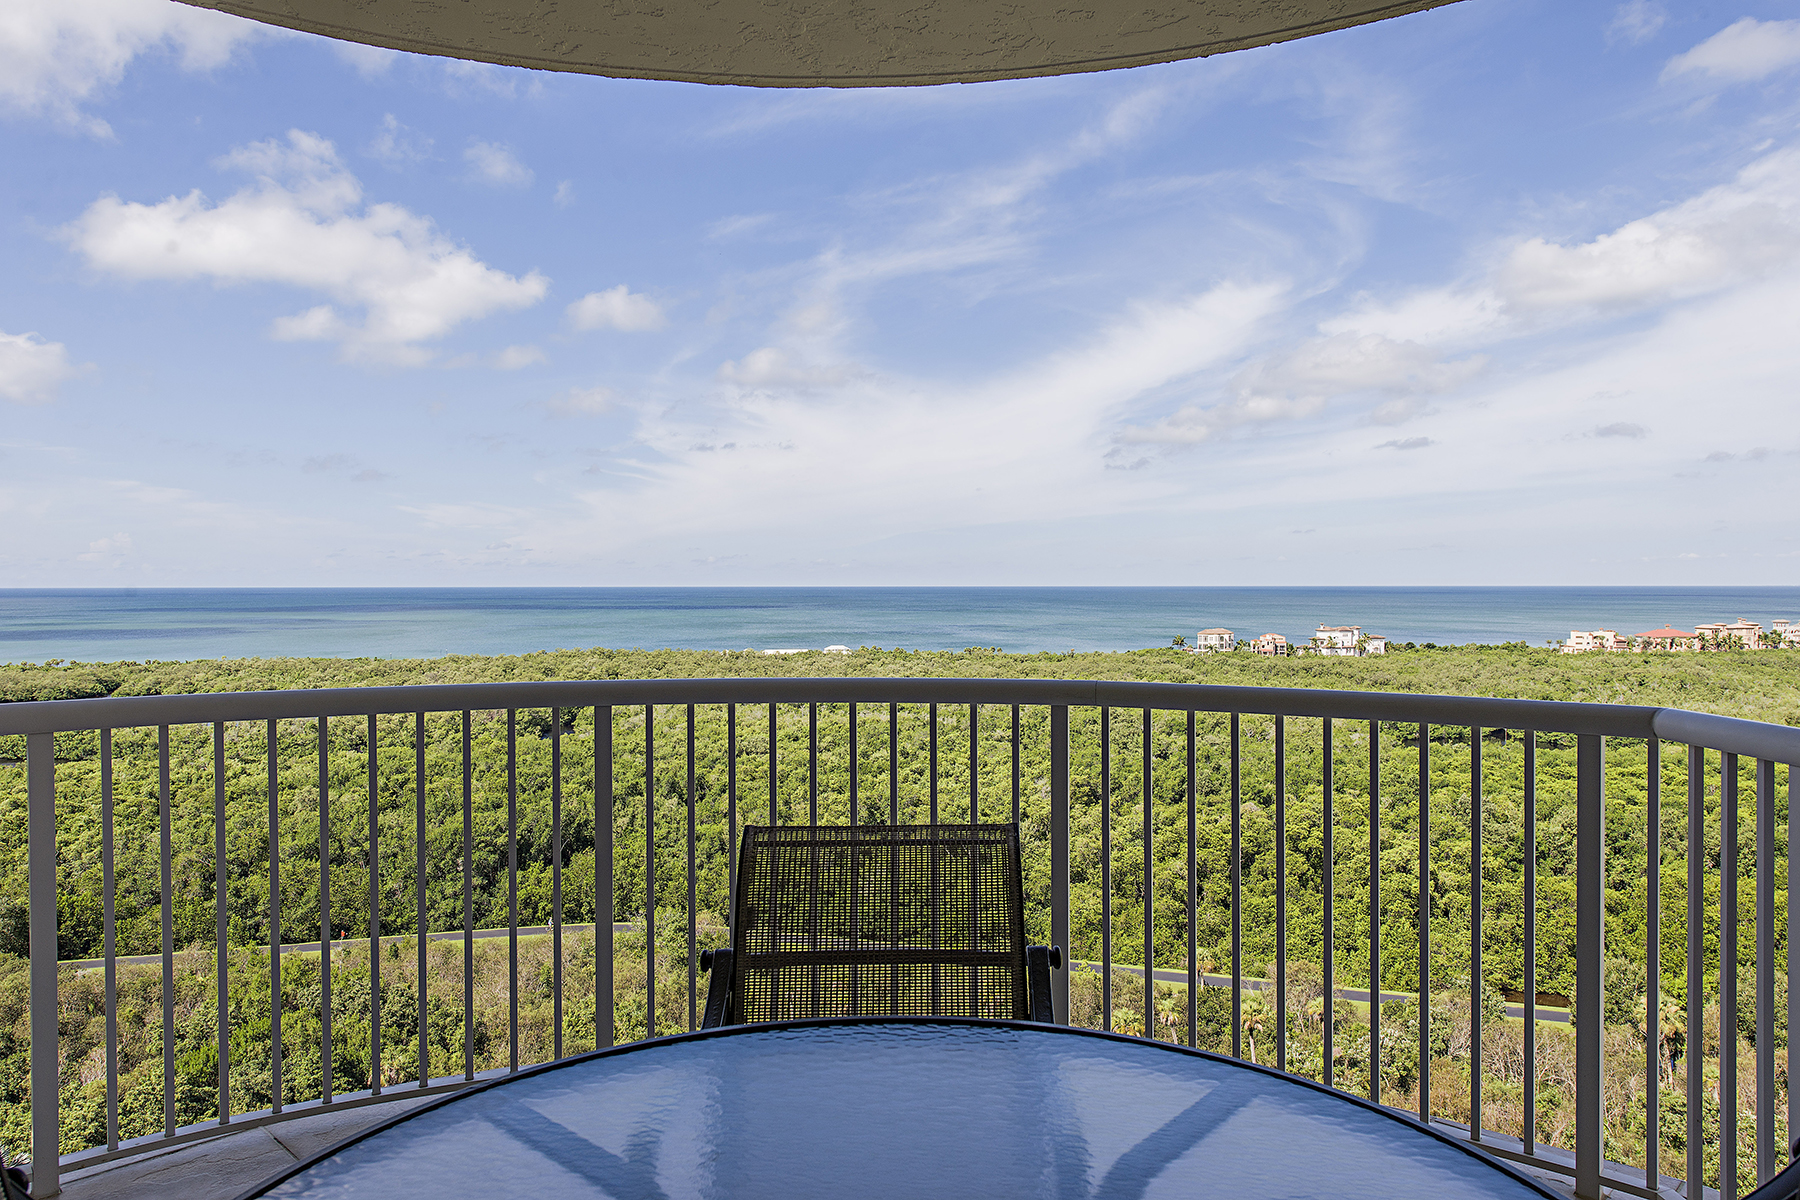 Condominium for Rent at 7117 Pelican Bay Blvd , 1508, Naples, FL 34108 7117 Pelican Bay Blvd 1508, Naples, Florida 34108 United States